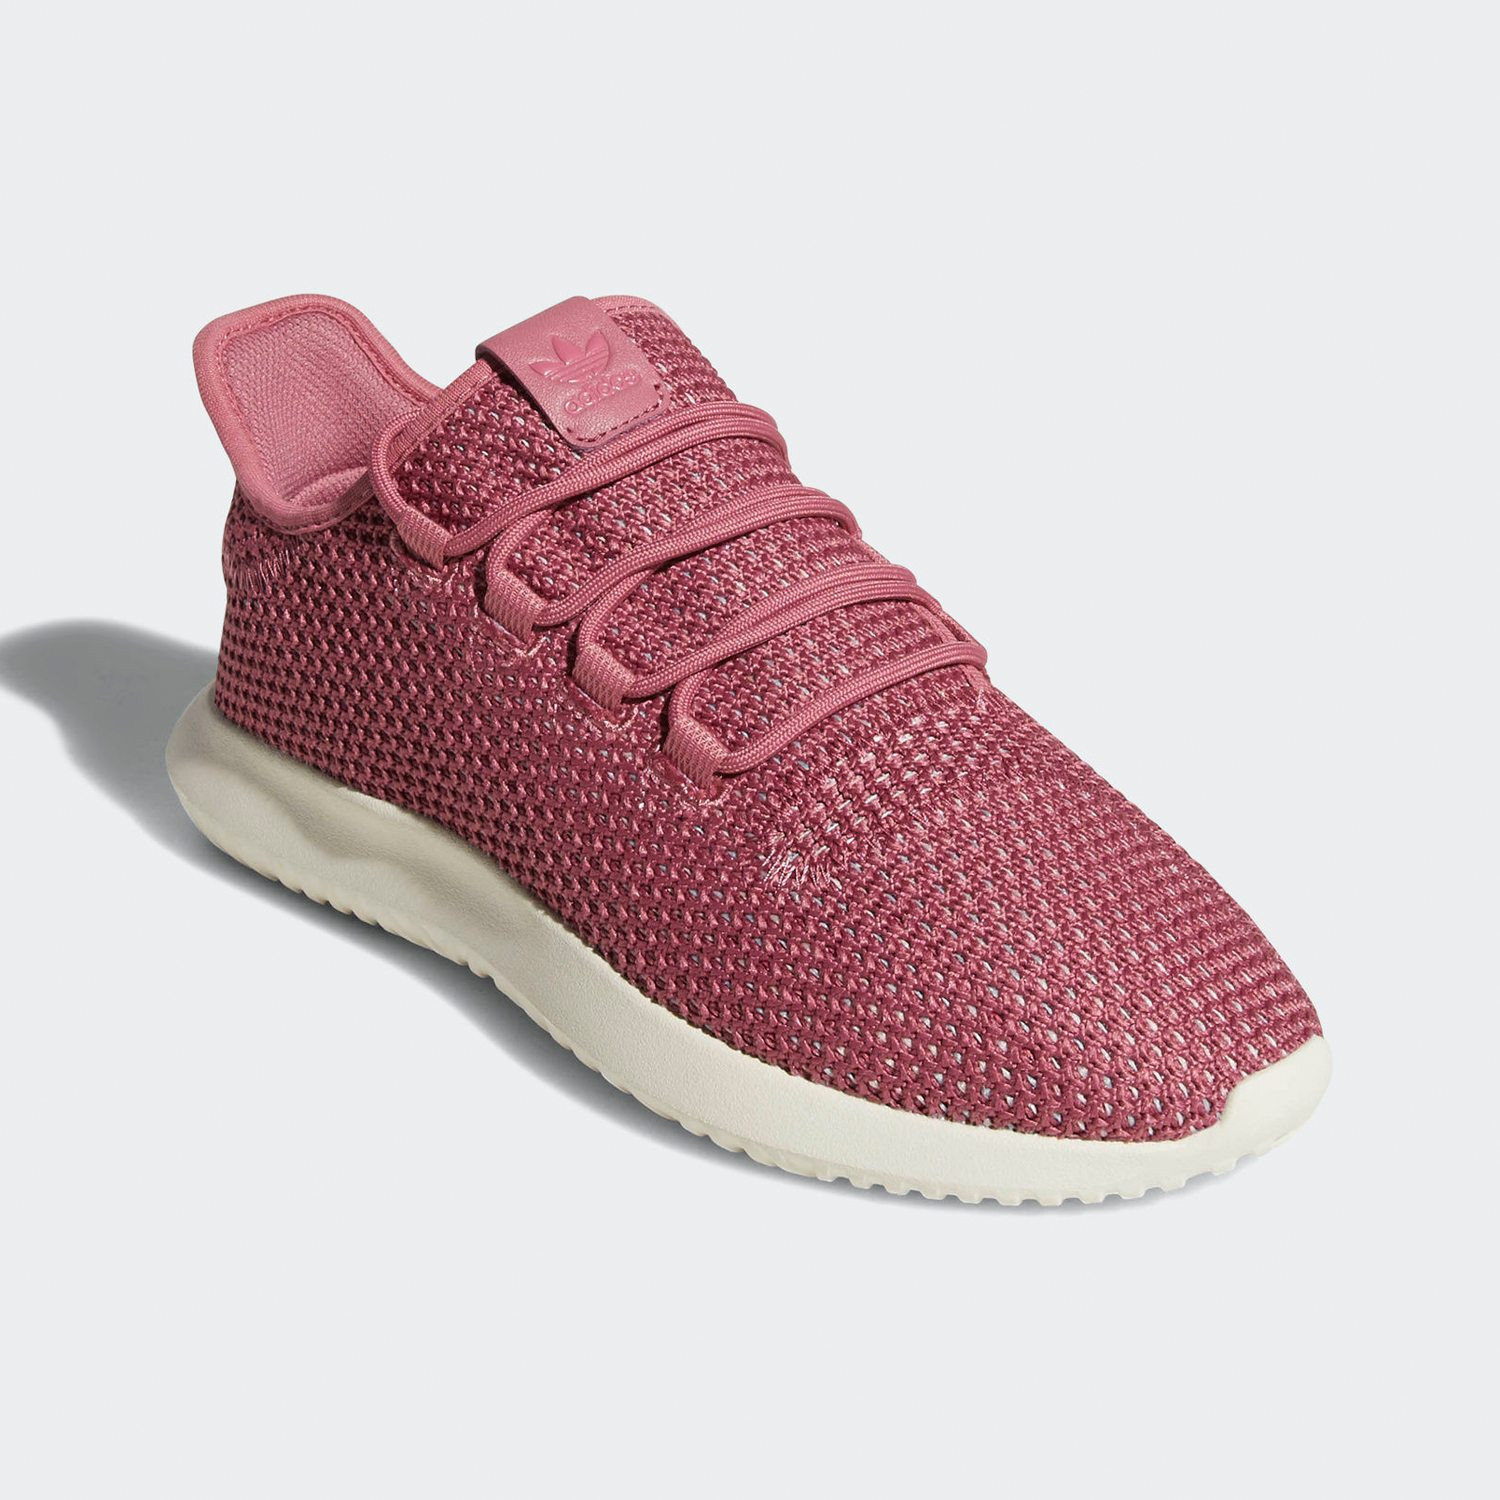 adidas Originals Tubular Shadow Women's Shoes